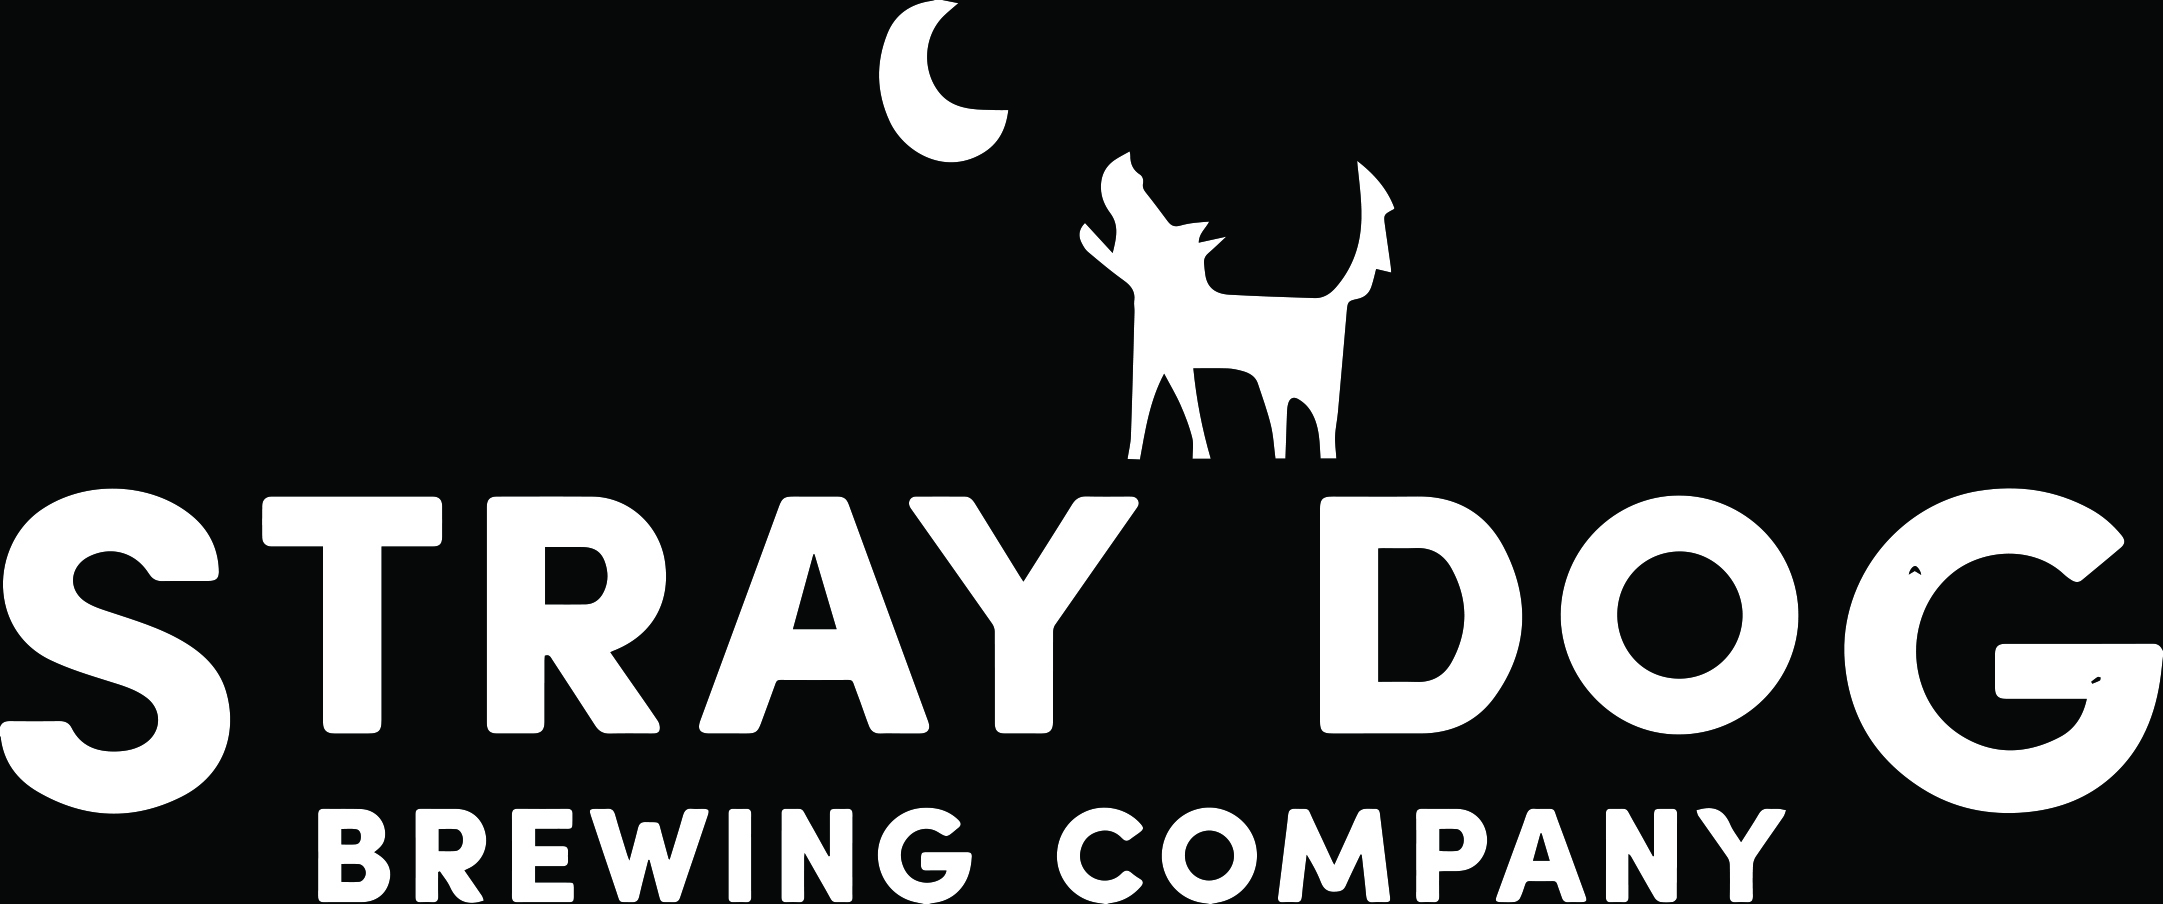 Stray dog logo - JAN302017